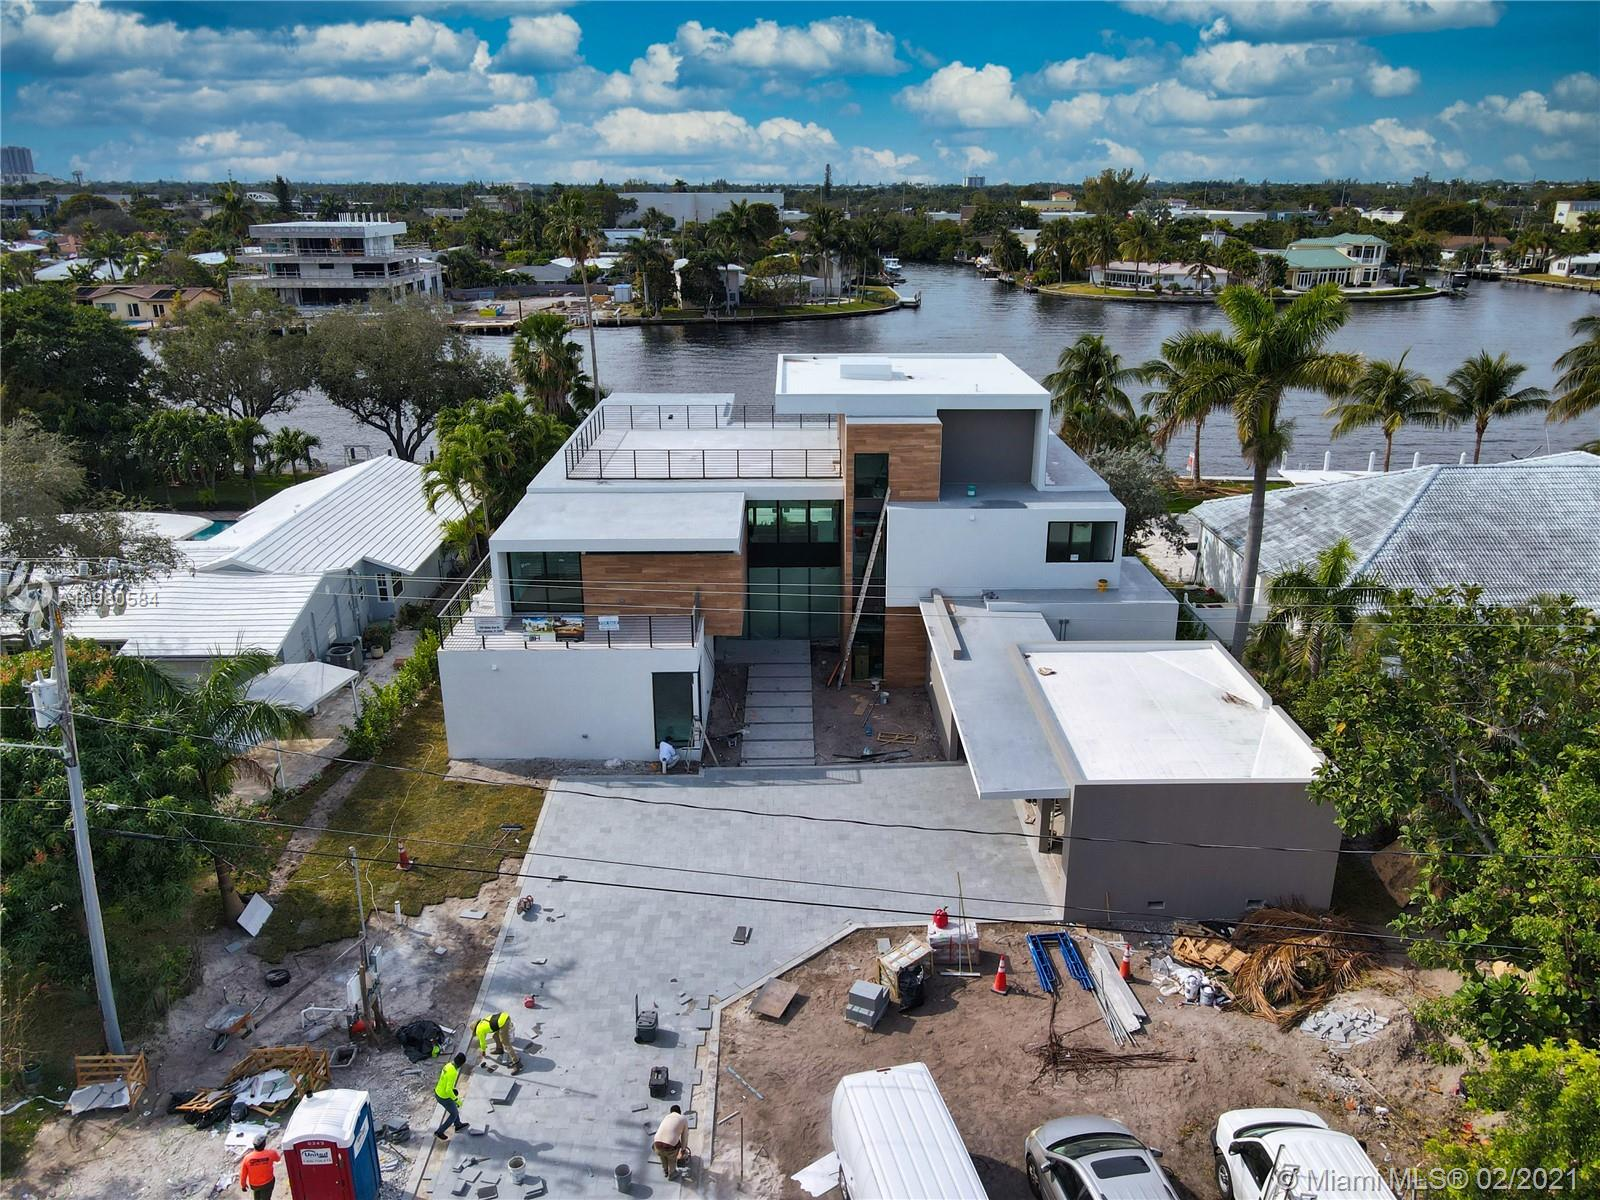 Unique, stunning, modern estate. 100 ft water frontage with panoramic views and dock. Infinity pool with attached spa. This amazing waterfront residence built in the established Coral Ridge neighborhood at 1529 Middle River Drive, Fort Lauderdale, Florida. The new home, designed in a contemporary style architecture, will be a 3-story structure with 7,700 square feet of living space that will include six bedrooms with a detached, 3-car garage, swimming pool, rooftop terrace and elevator.